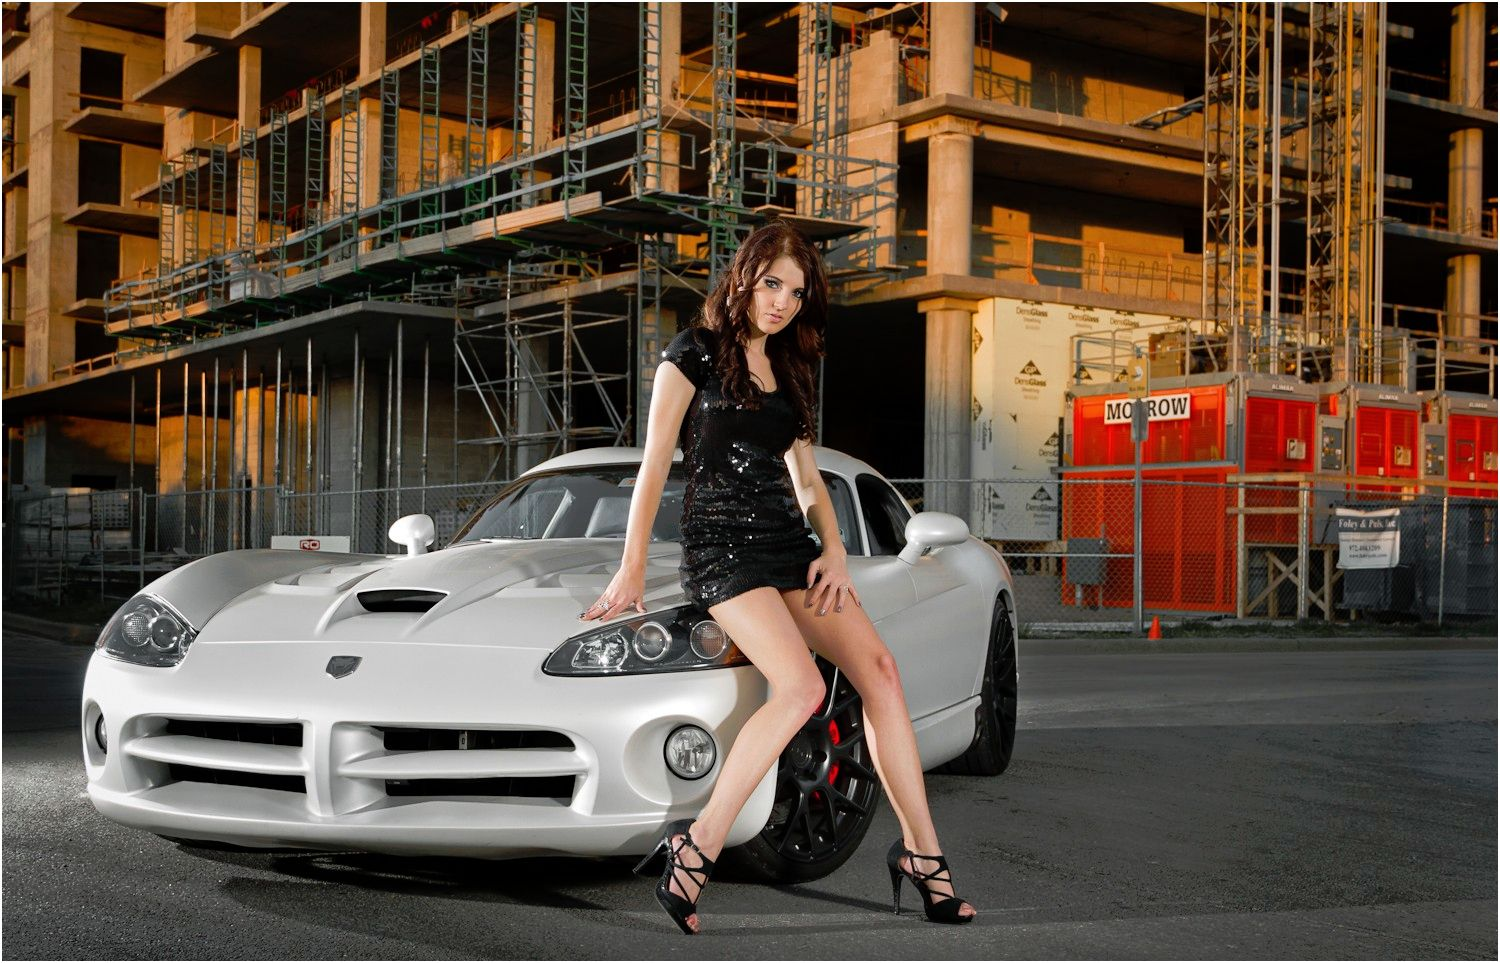 Viper Car Wallpaper 1500hp 2013 Dodge Viper By Construction Site And Sexy